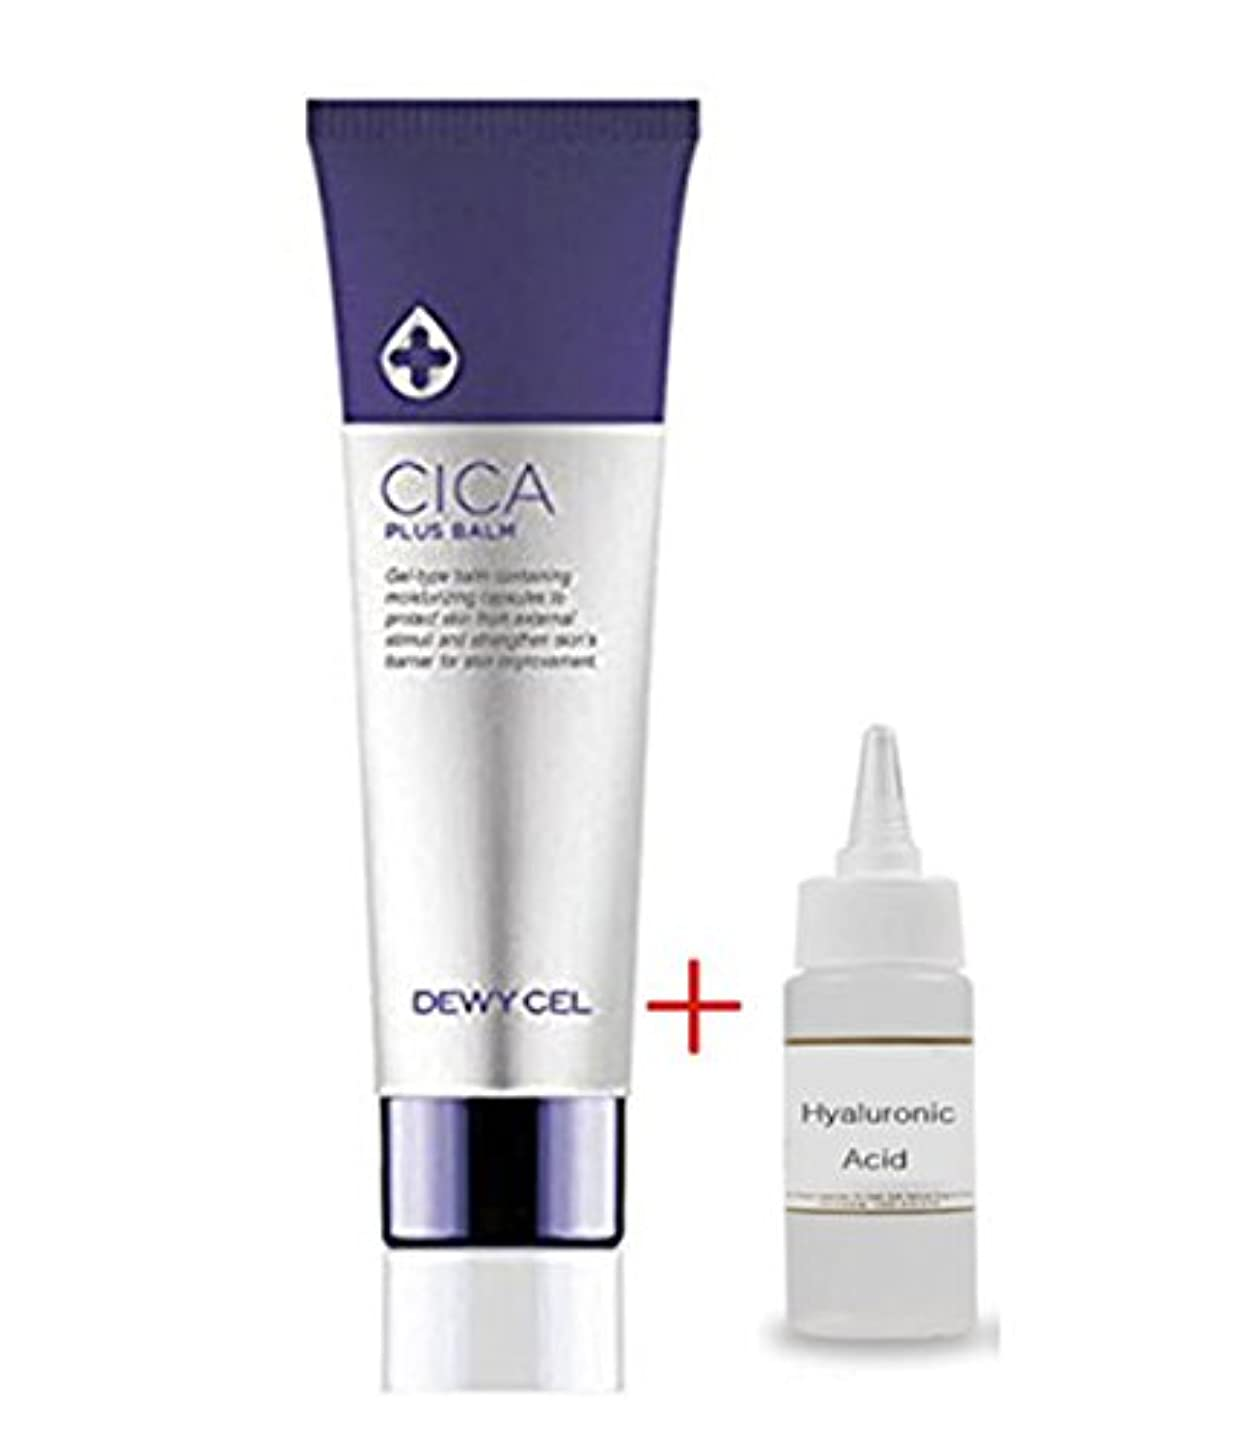 セール切り離すテレビを見るDEWY CEL (DEWYCELL) Cica Plus Balm 50ml+ Ochloo Hyaluronic Acid 10ml